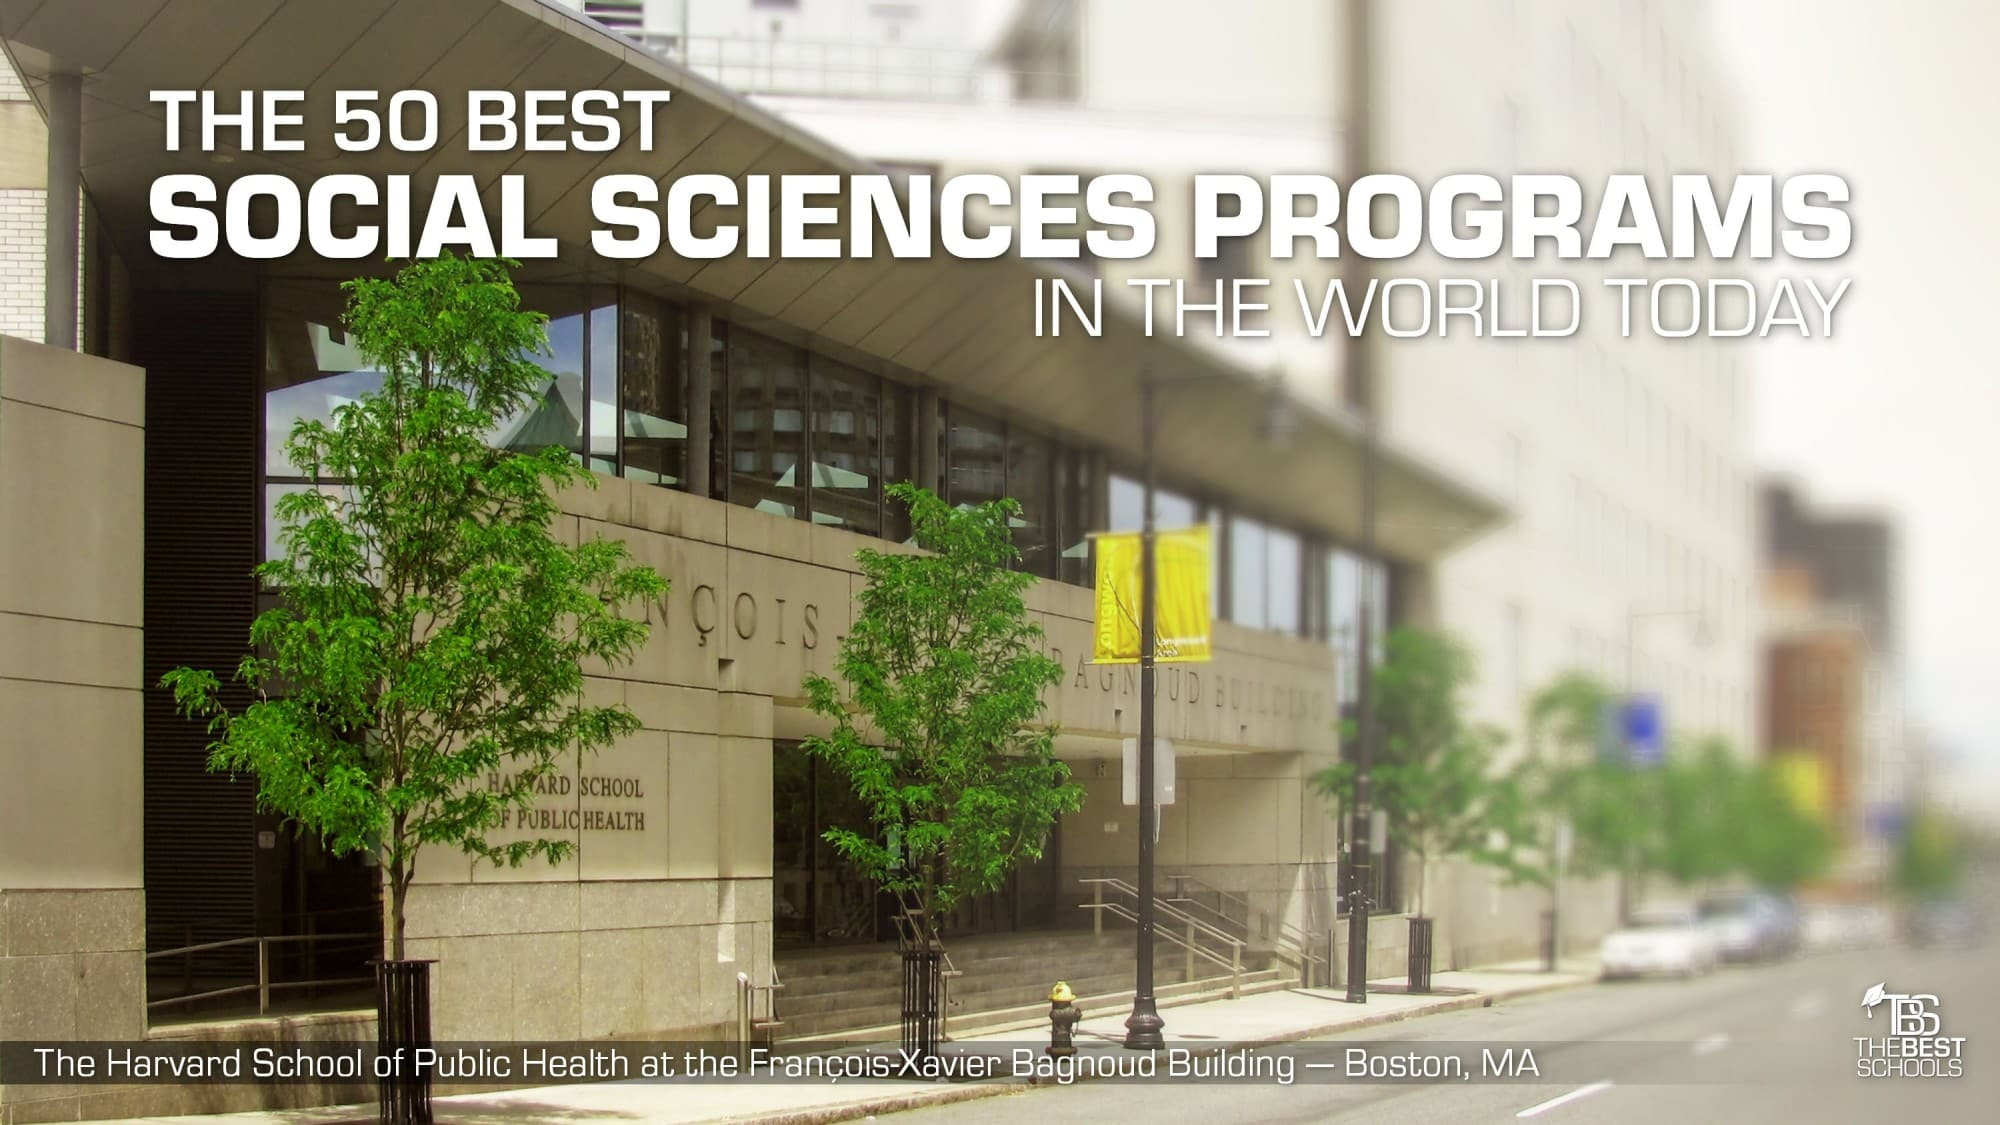 The 50 Best Social Sciences Programs In The World Today